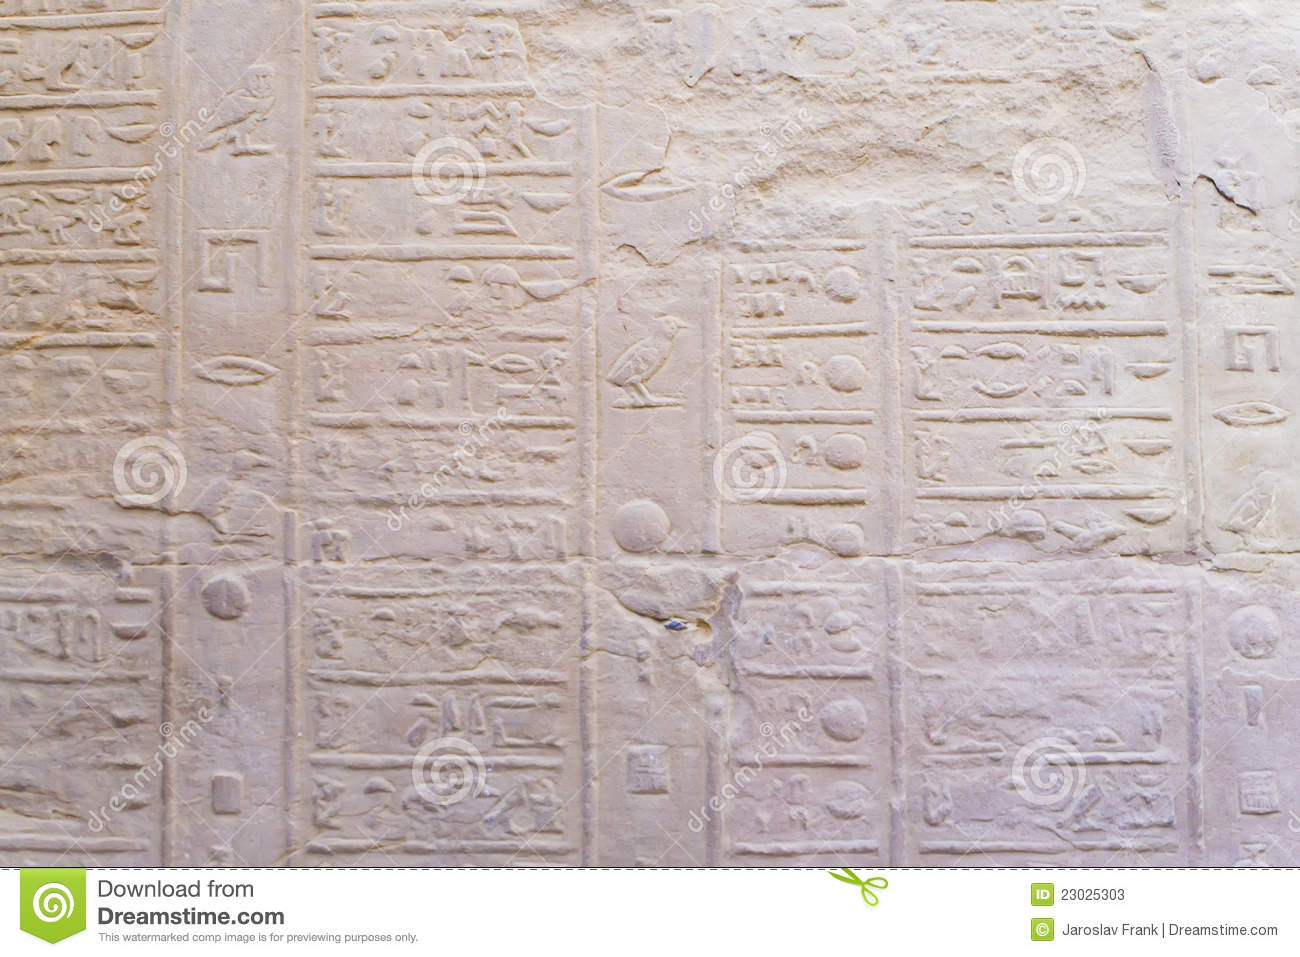 The Old Egyptian Calendar Stock Image Image Of Texture